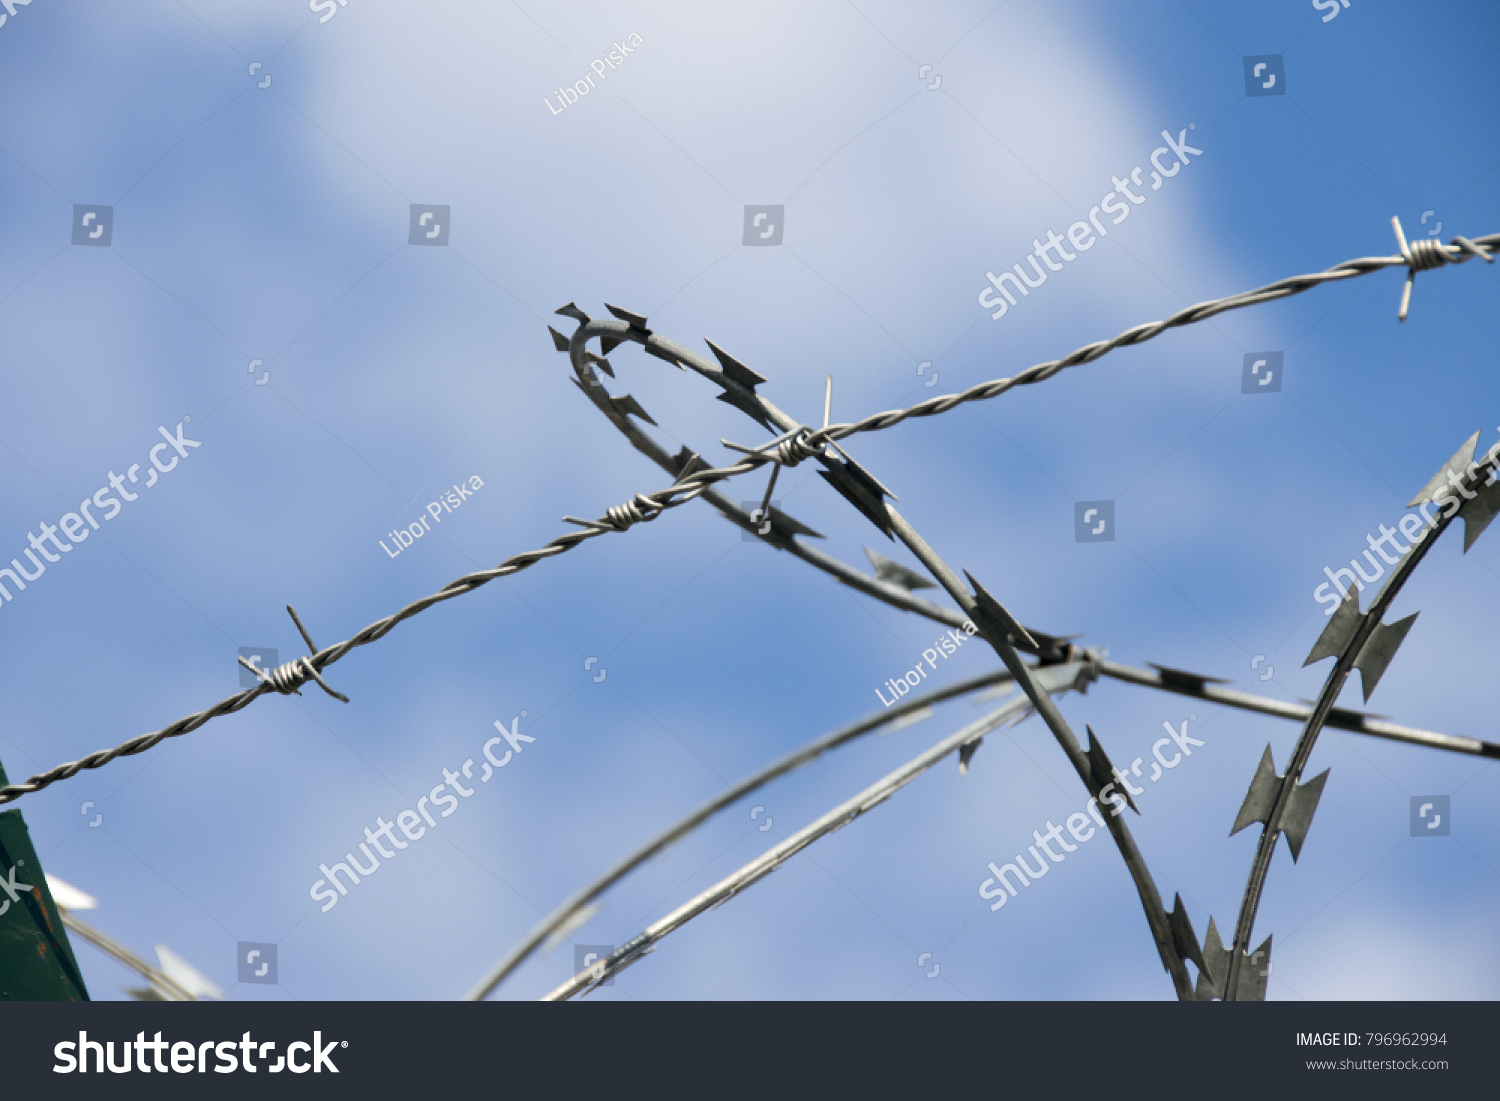 Protective Coils Sharp Barbed Razor Wire Stock Photo (Royalty Free ...